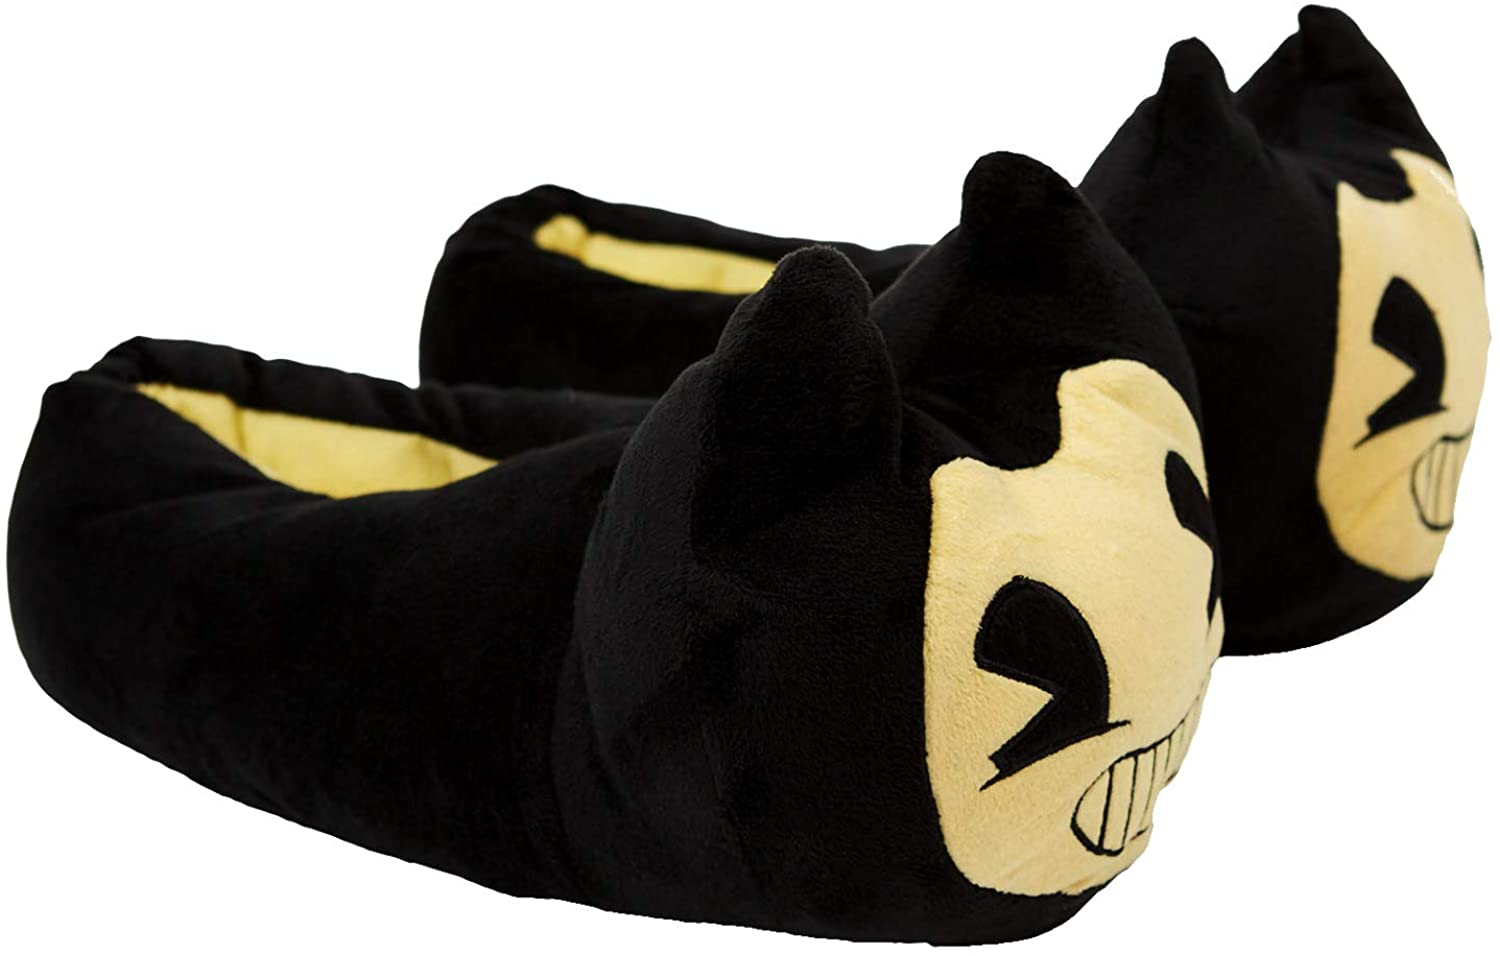 Bendy and the Ink Machine Slippers - Bendy Black and Yellow Slippers